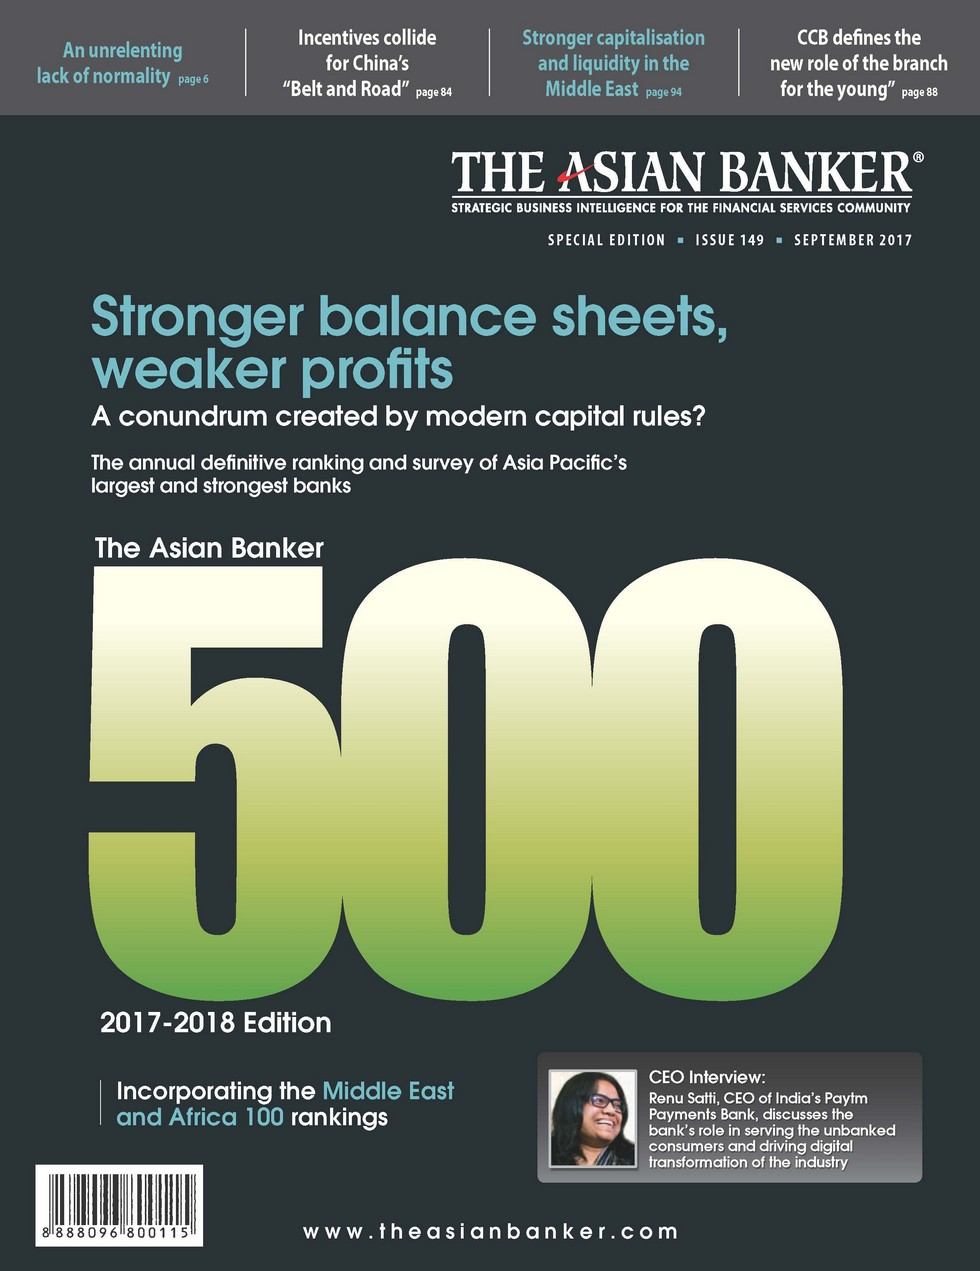 Preview, Issue: 149. The Asian Banker 500 2017-2018 Edition